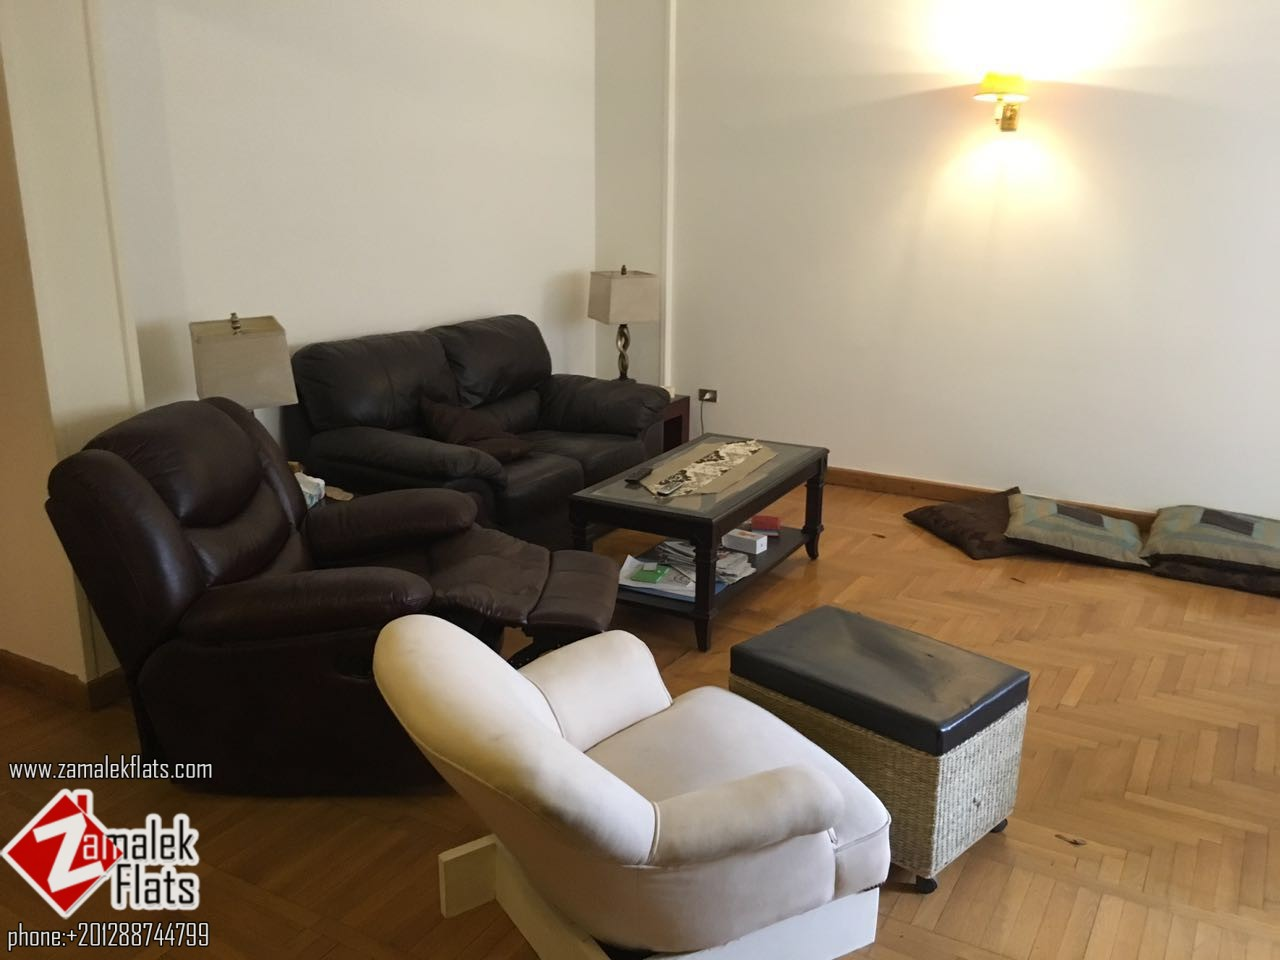 Apartment for rent in zamalek at shopping area